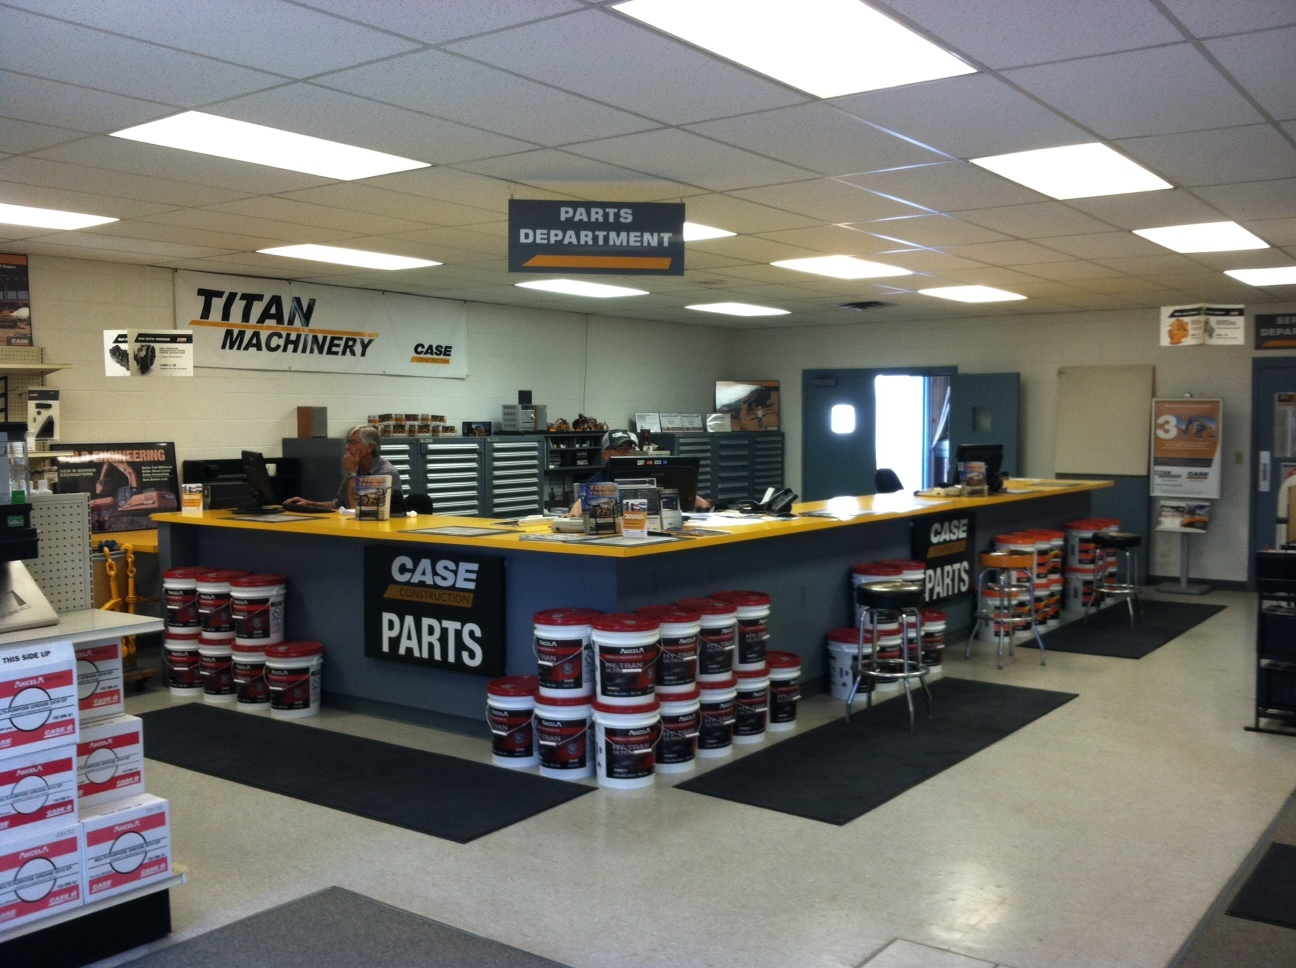 Titan Machinery In Albuquerque, Nm At 6613 Edith Boulevard. Cheap Email Hosting Services. Individual Credit Report Locum Tenens Billing. Incident Management Itil Get Website Designed. Freestyle Watch Instructions. Air Conditioning Service Houston. Platinum Restaurant Equipment. Online Degrees In Electrical Engineering. United Healthcare Medicare Supplement Plans